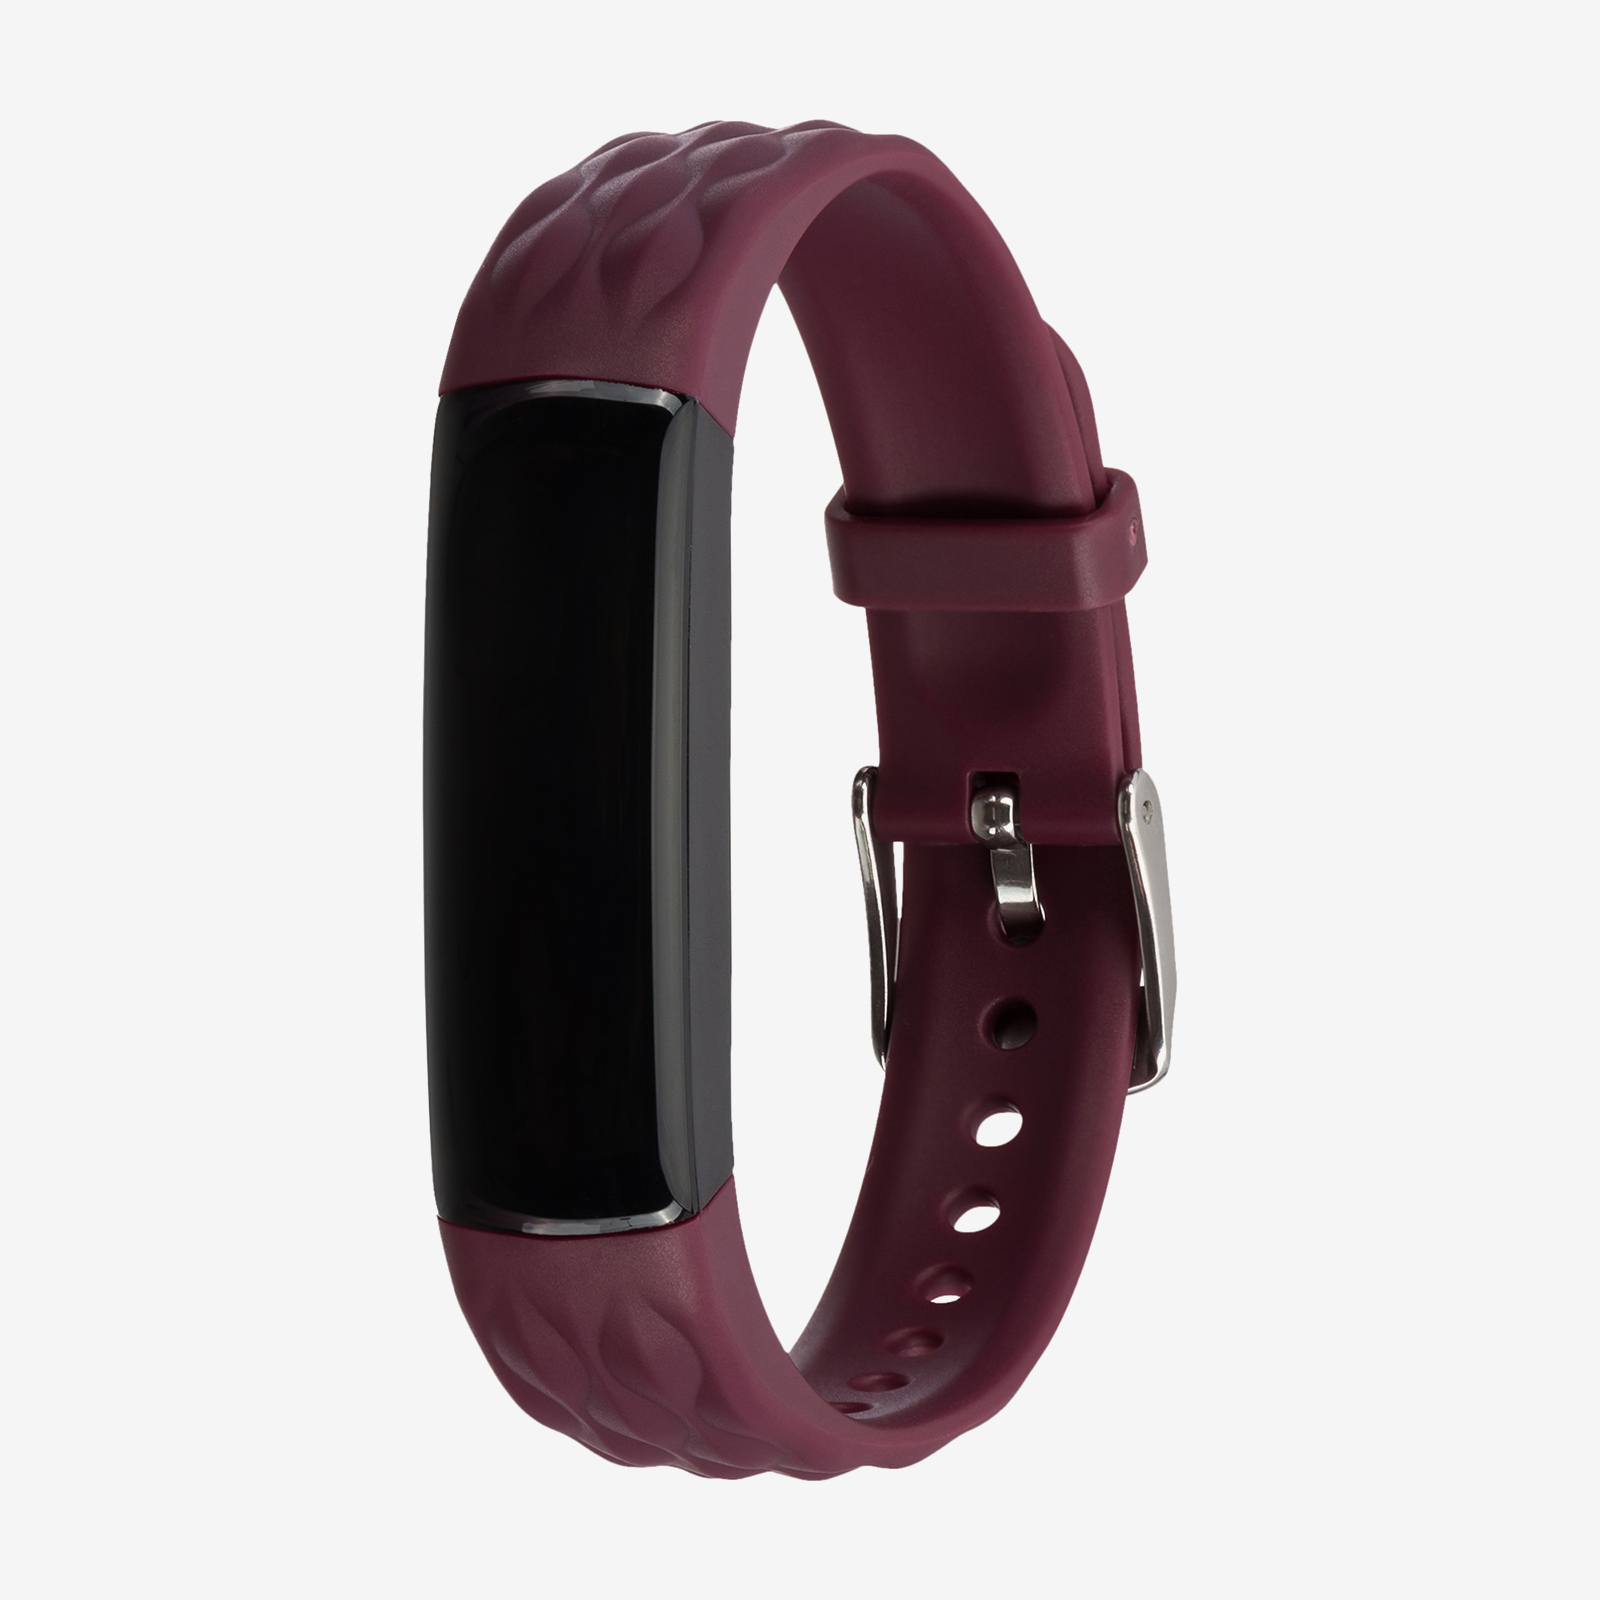 Smartwatch product picture